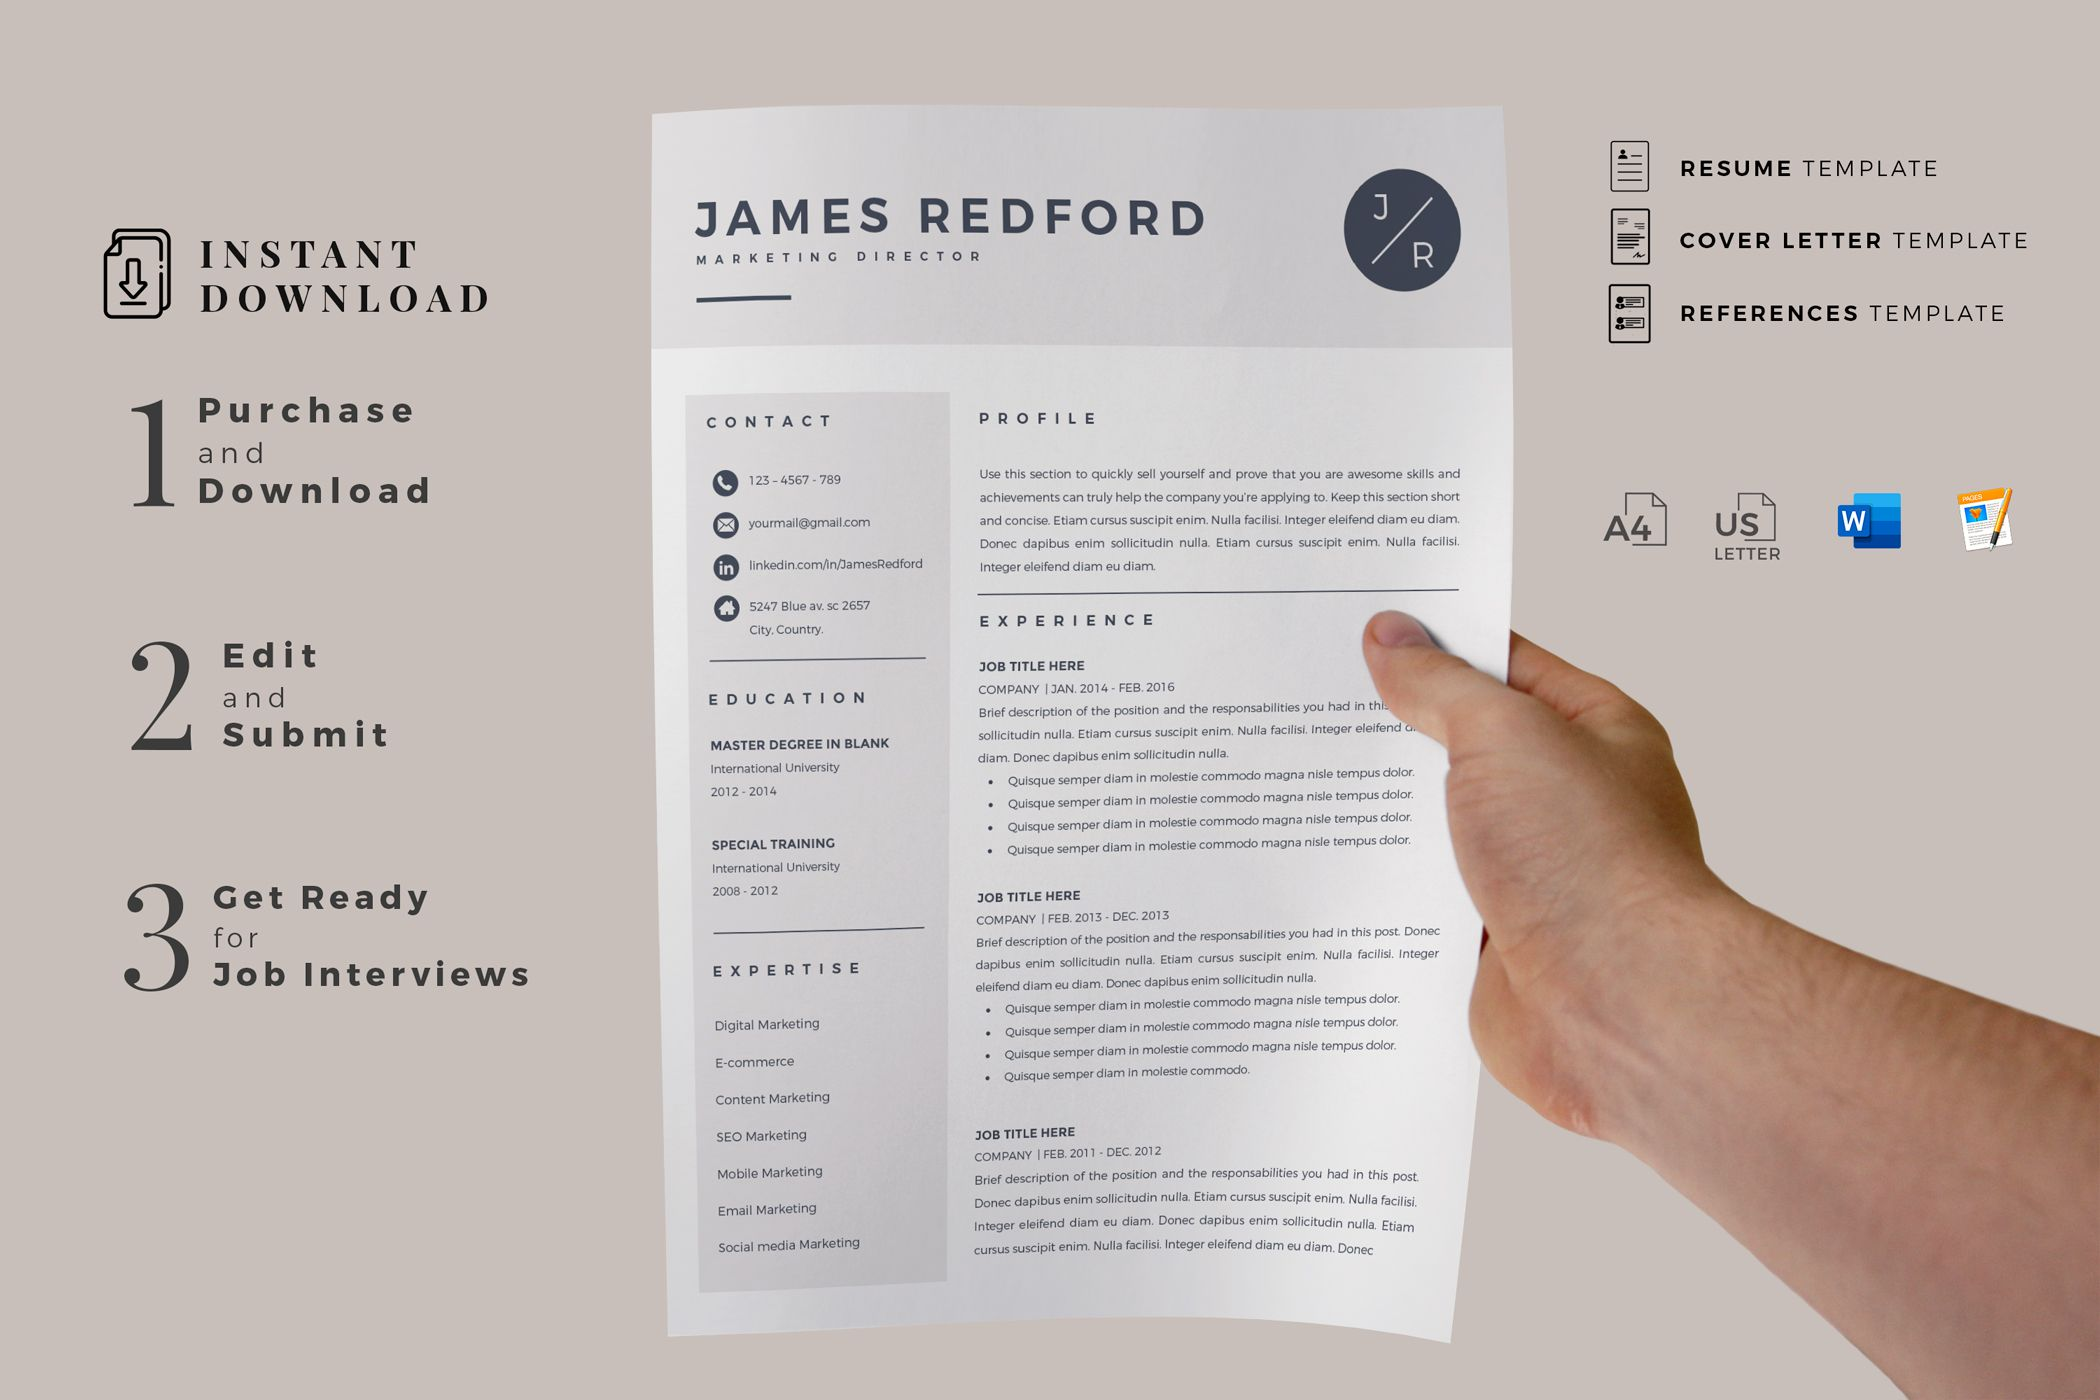 Resume Template Free Resume Template Professional Resume Examples Simple Resume Job Resume Template Free Resume Template Word Microsoft Word Resume Template